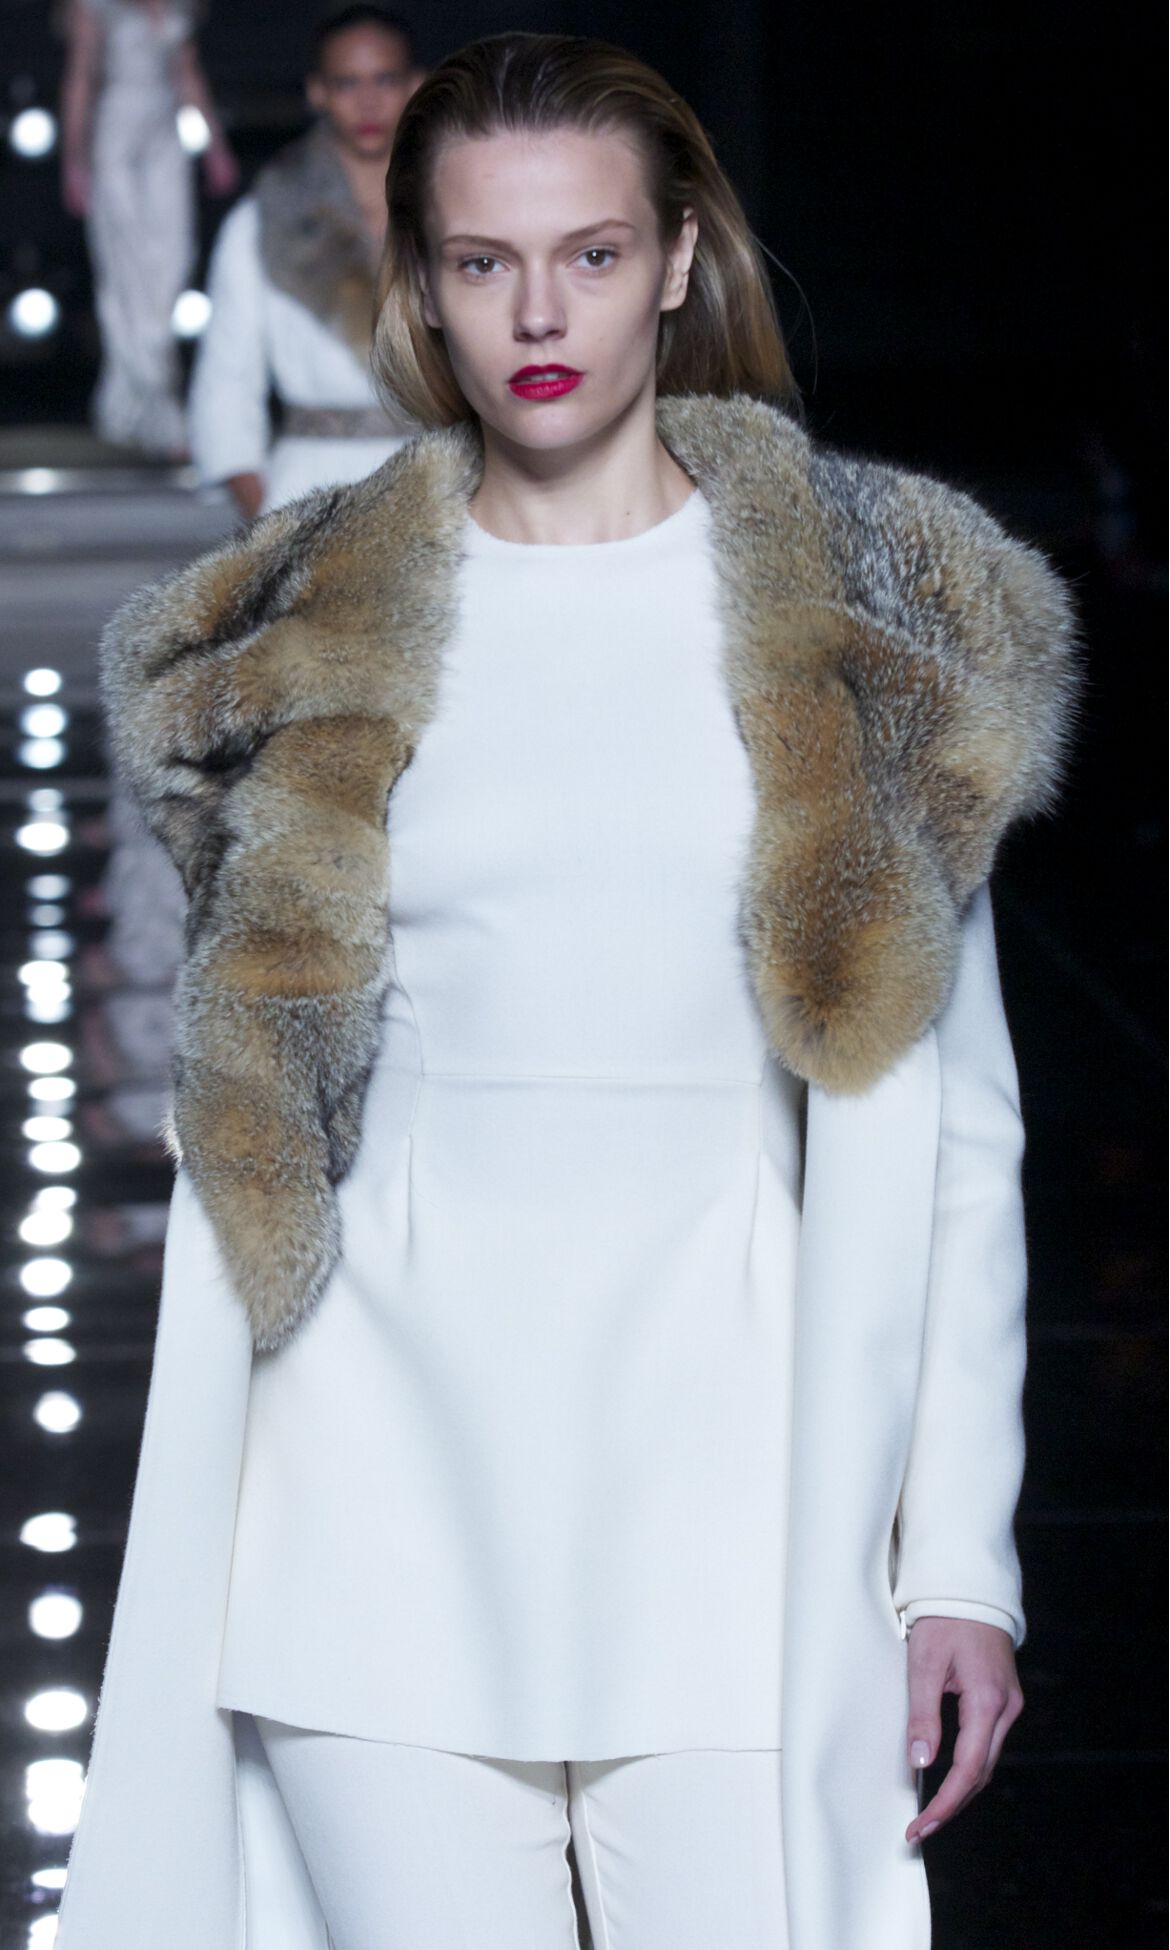 Ermanno Scervino Women's Pre Collection 2013 2014